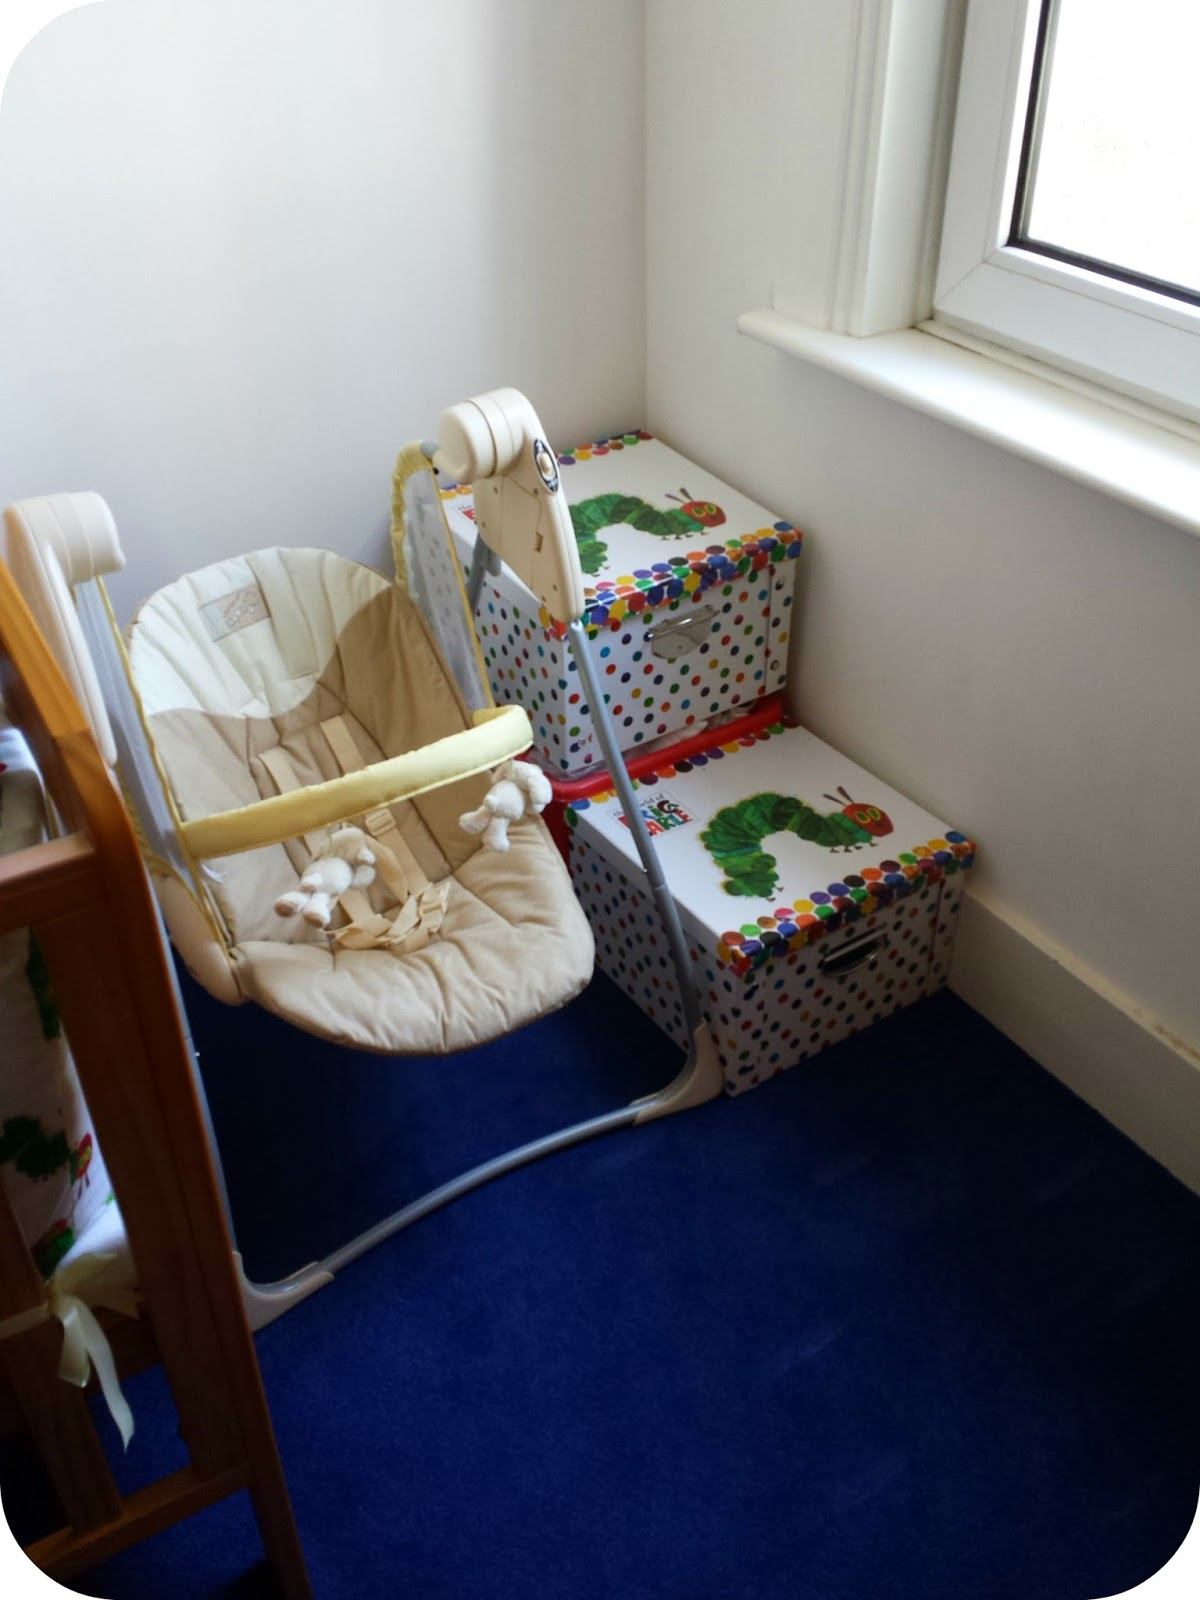 Comfy Nursing Chair High Floor Mats Babies The Adventure Of Parenthood: A Very Hungry Catepillar Nursery